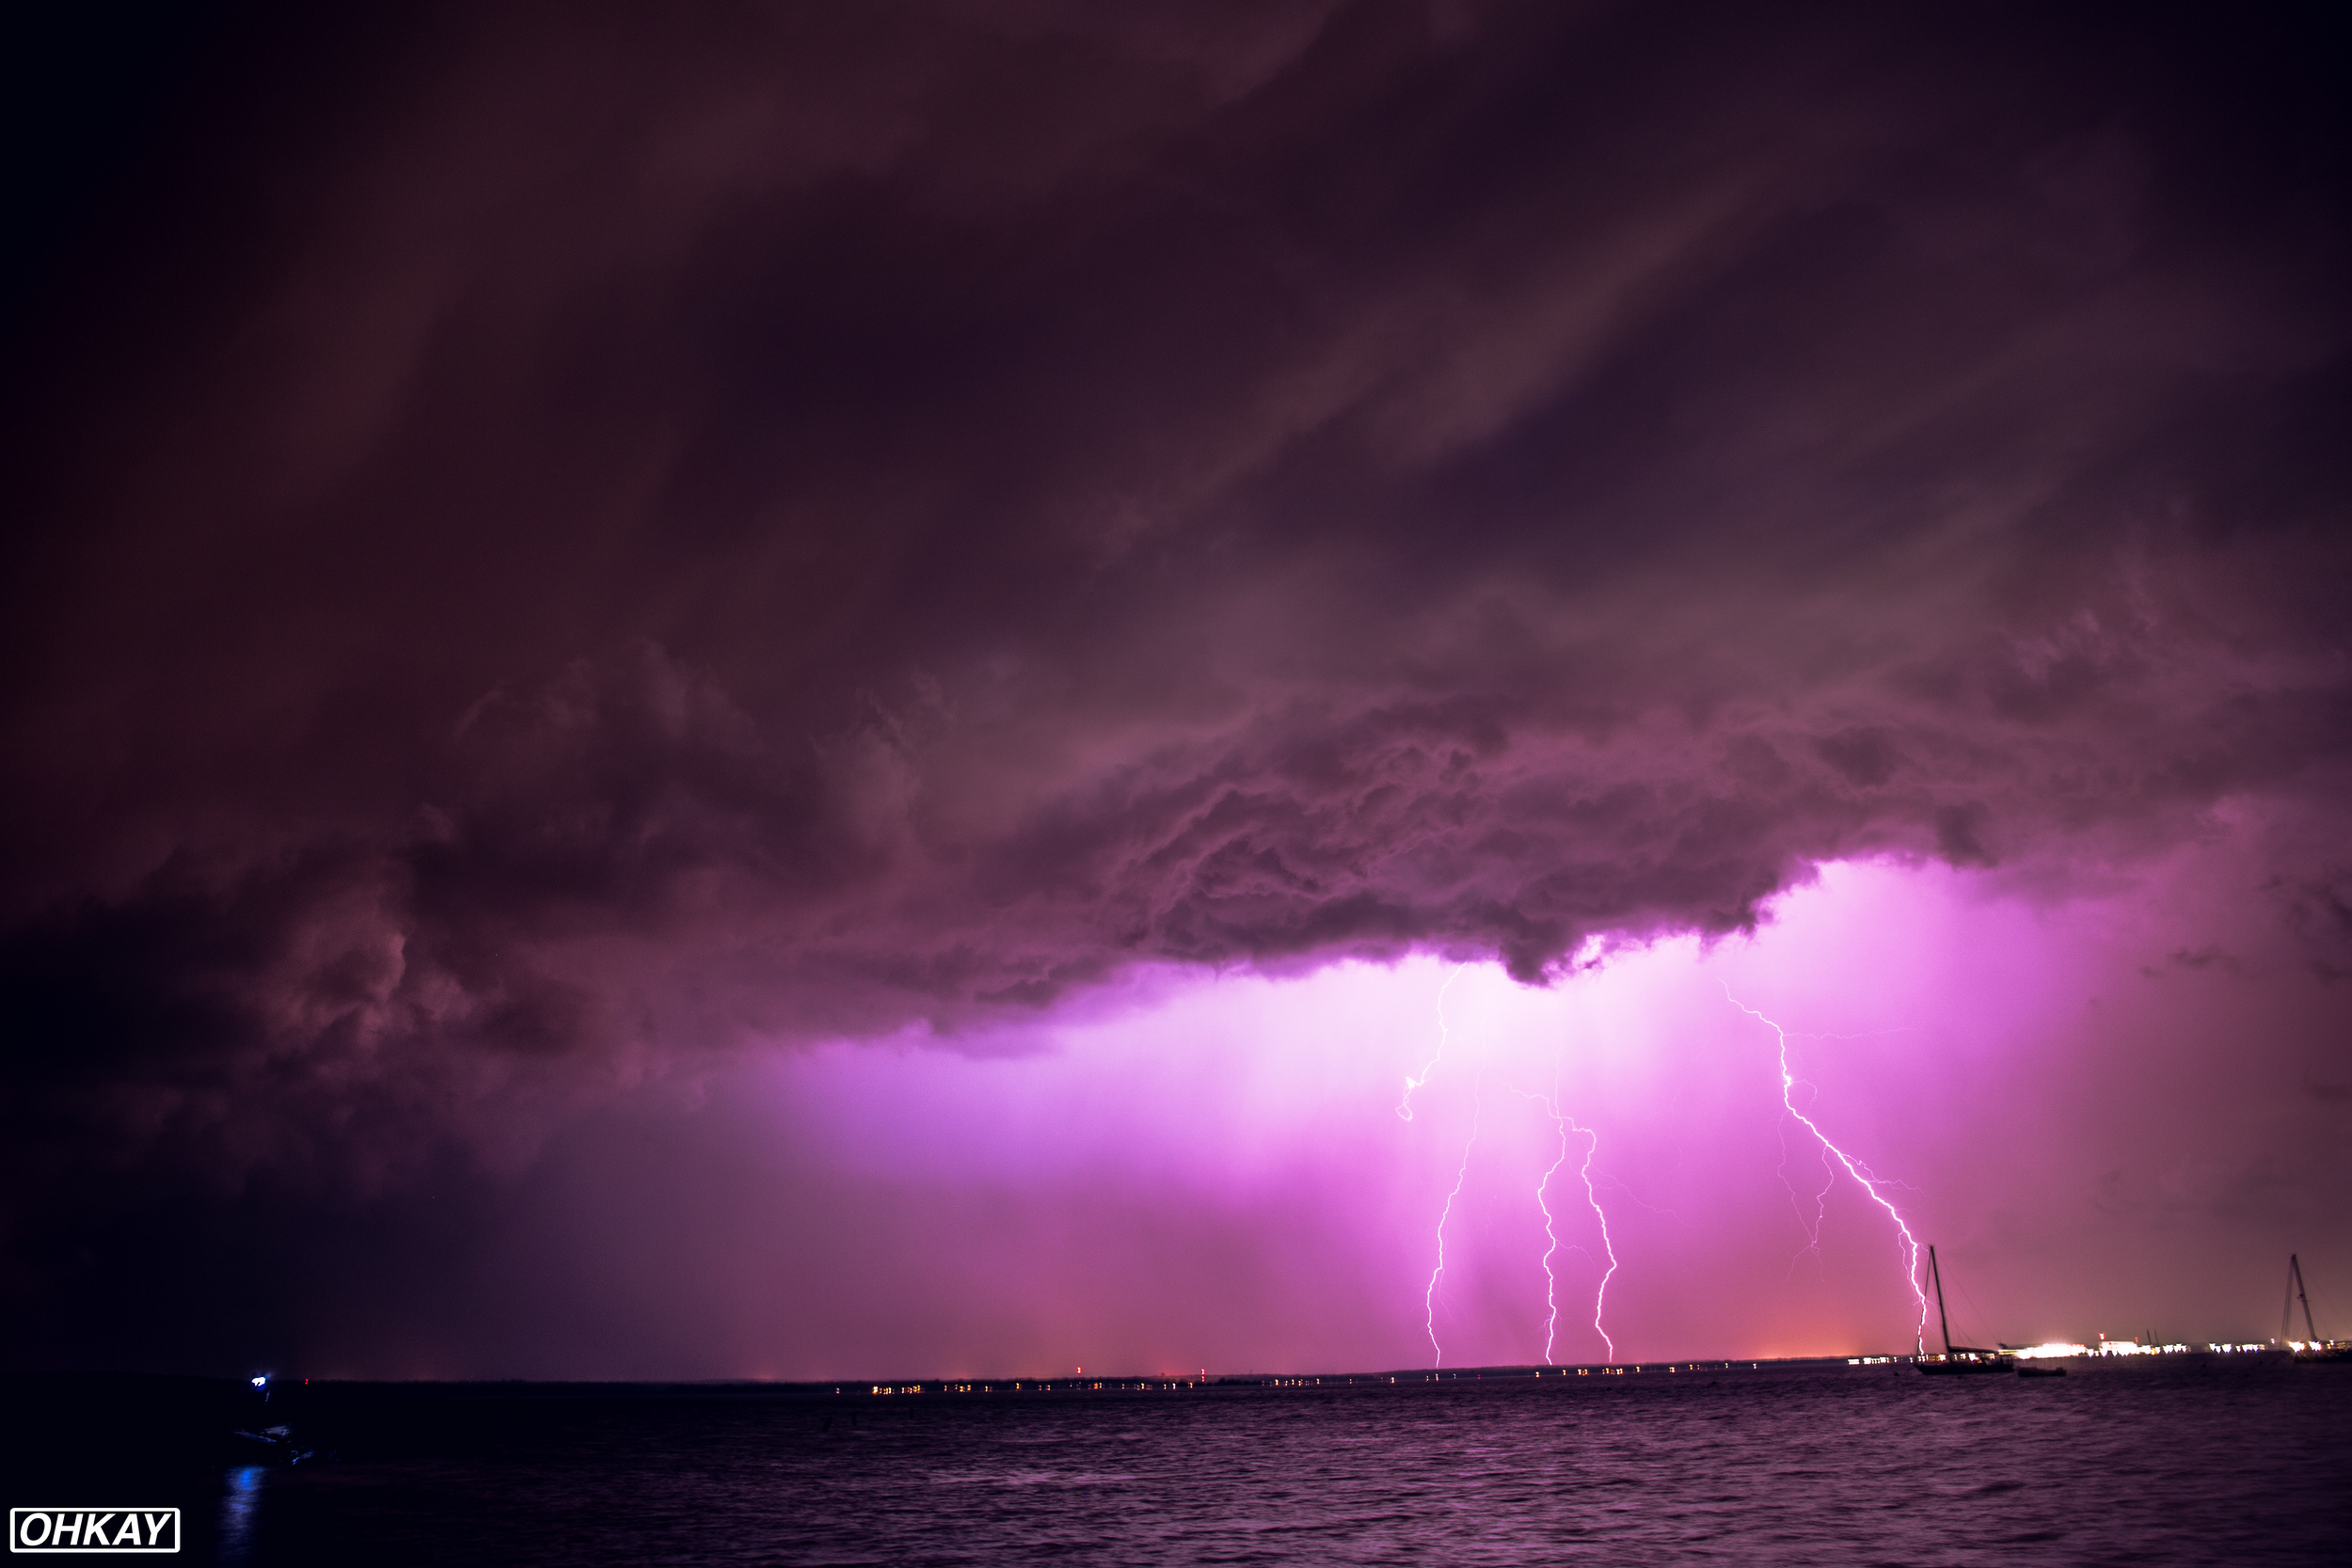 THIS CRAZY LIGHTNING STORM WE FOUND. CAMERAS STRAPPED. LONG EXPOSURES ON.